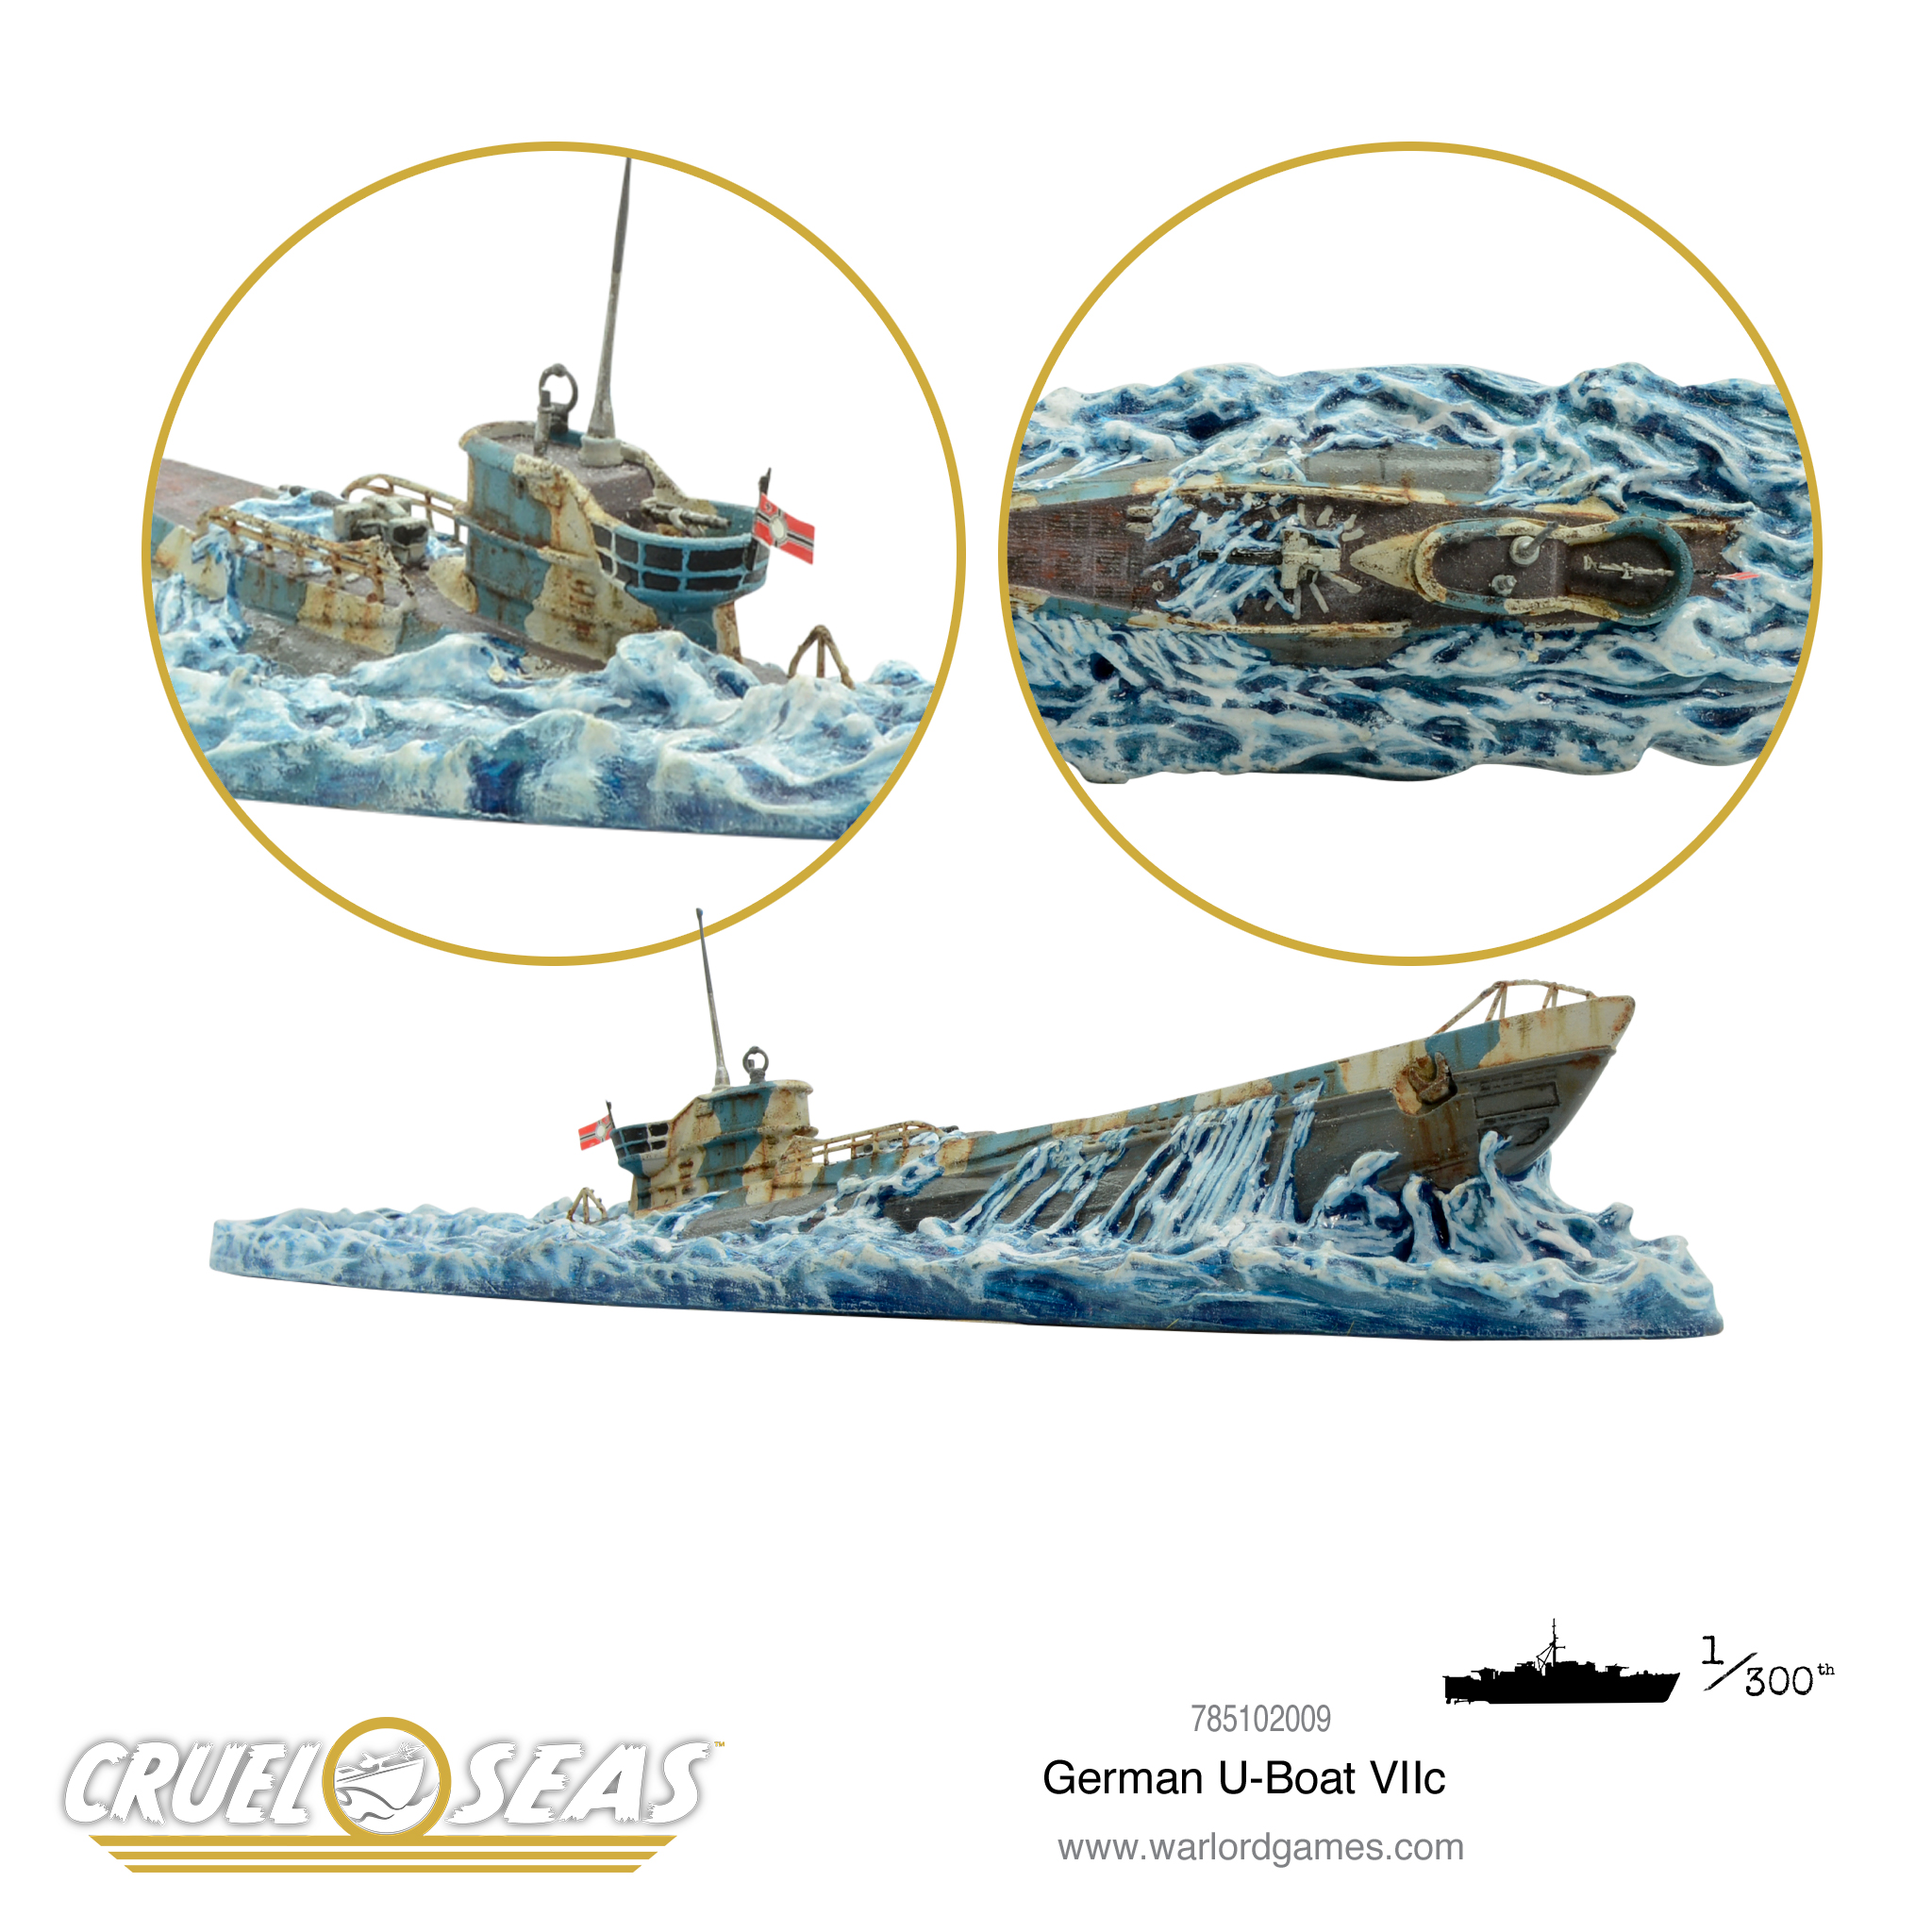 German U-Boat VIIc